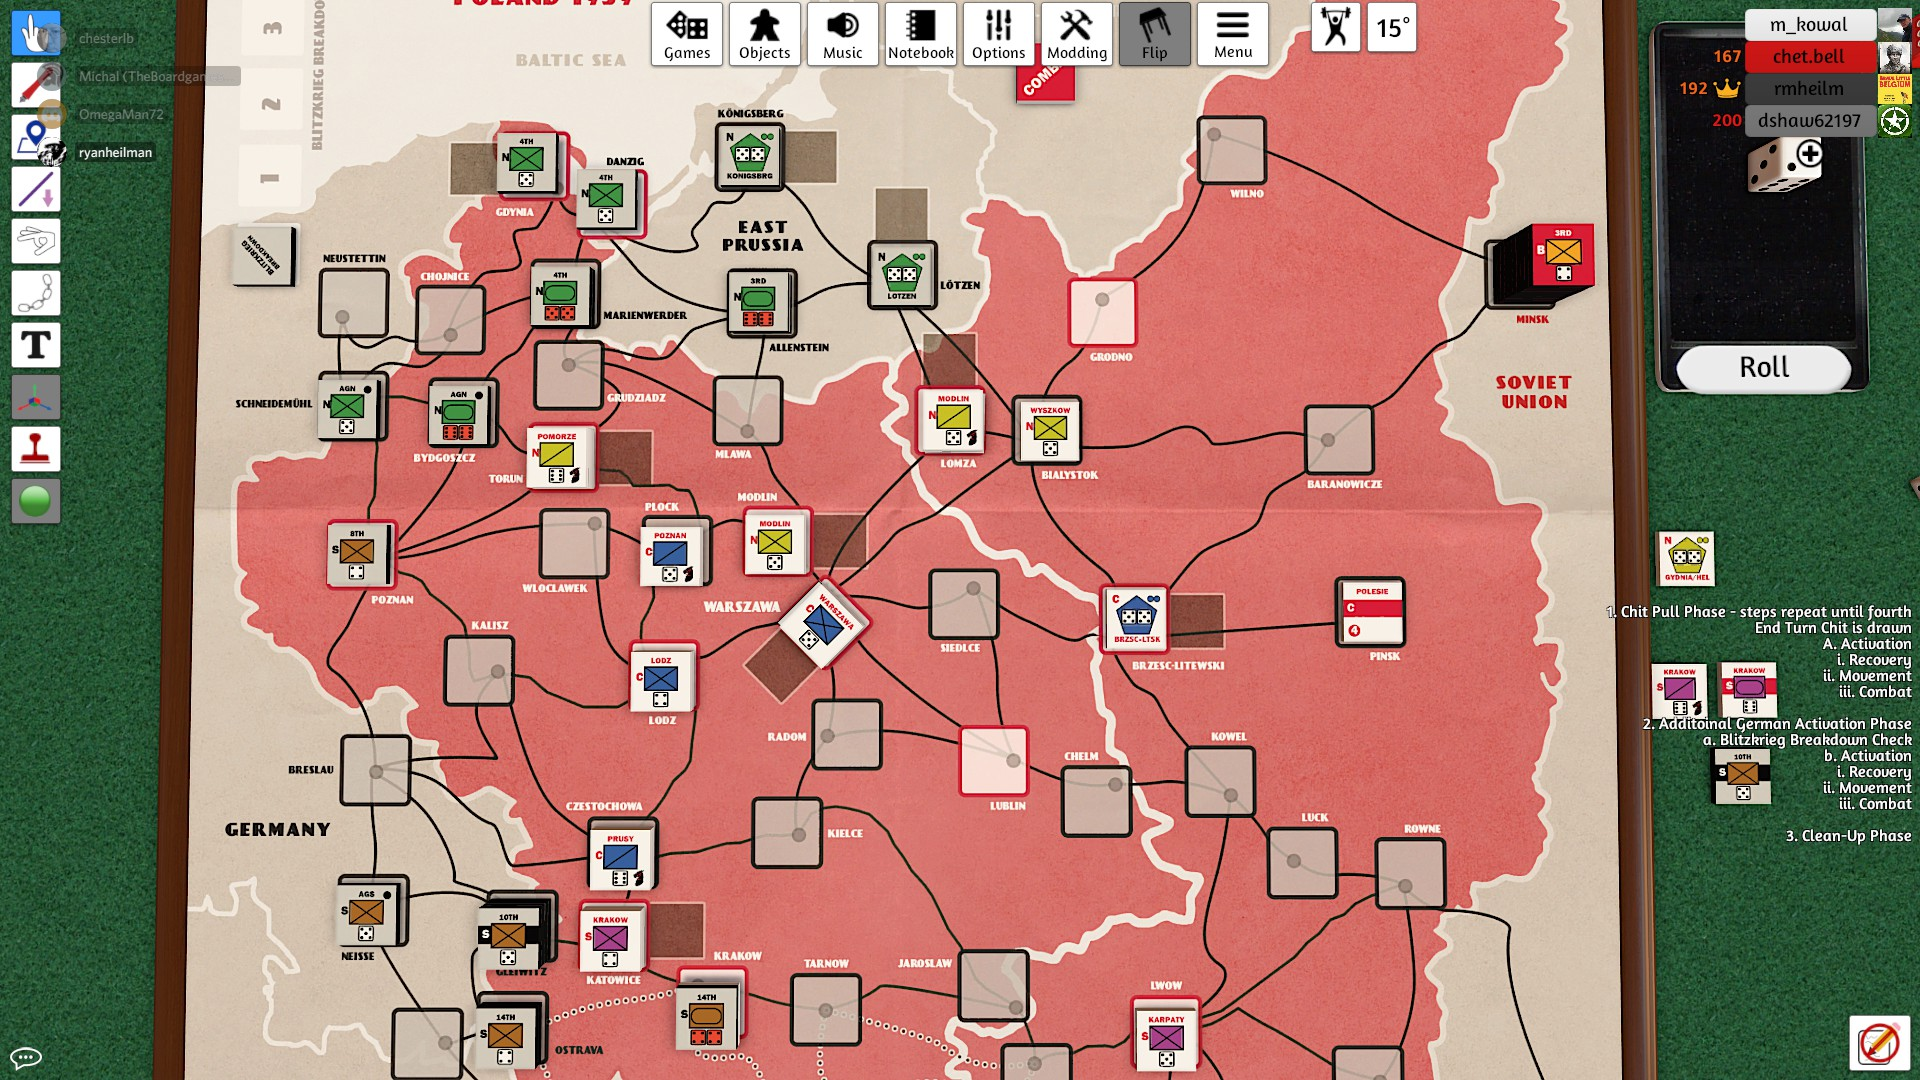 T1 end - Chester took North (Gdynia) and will start to besiege Katowice. Things starts slowly but steadly. For now.